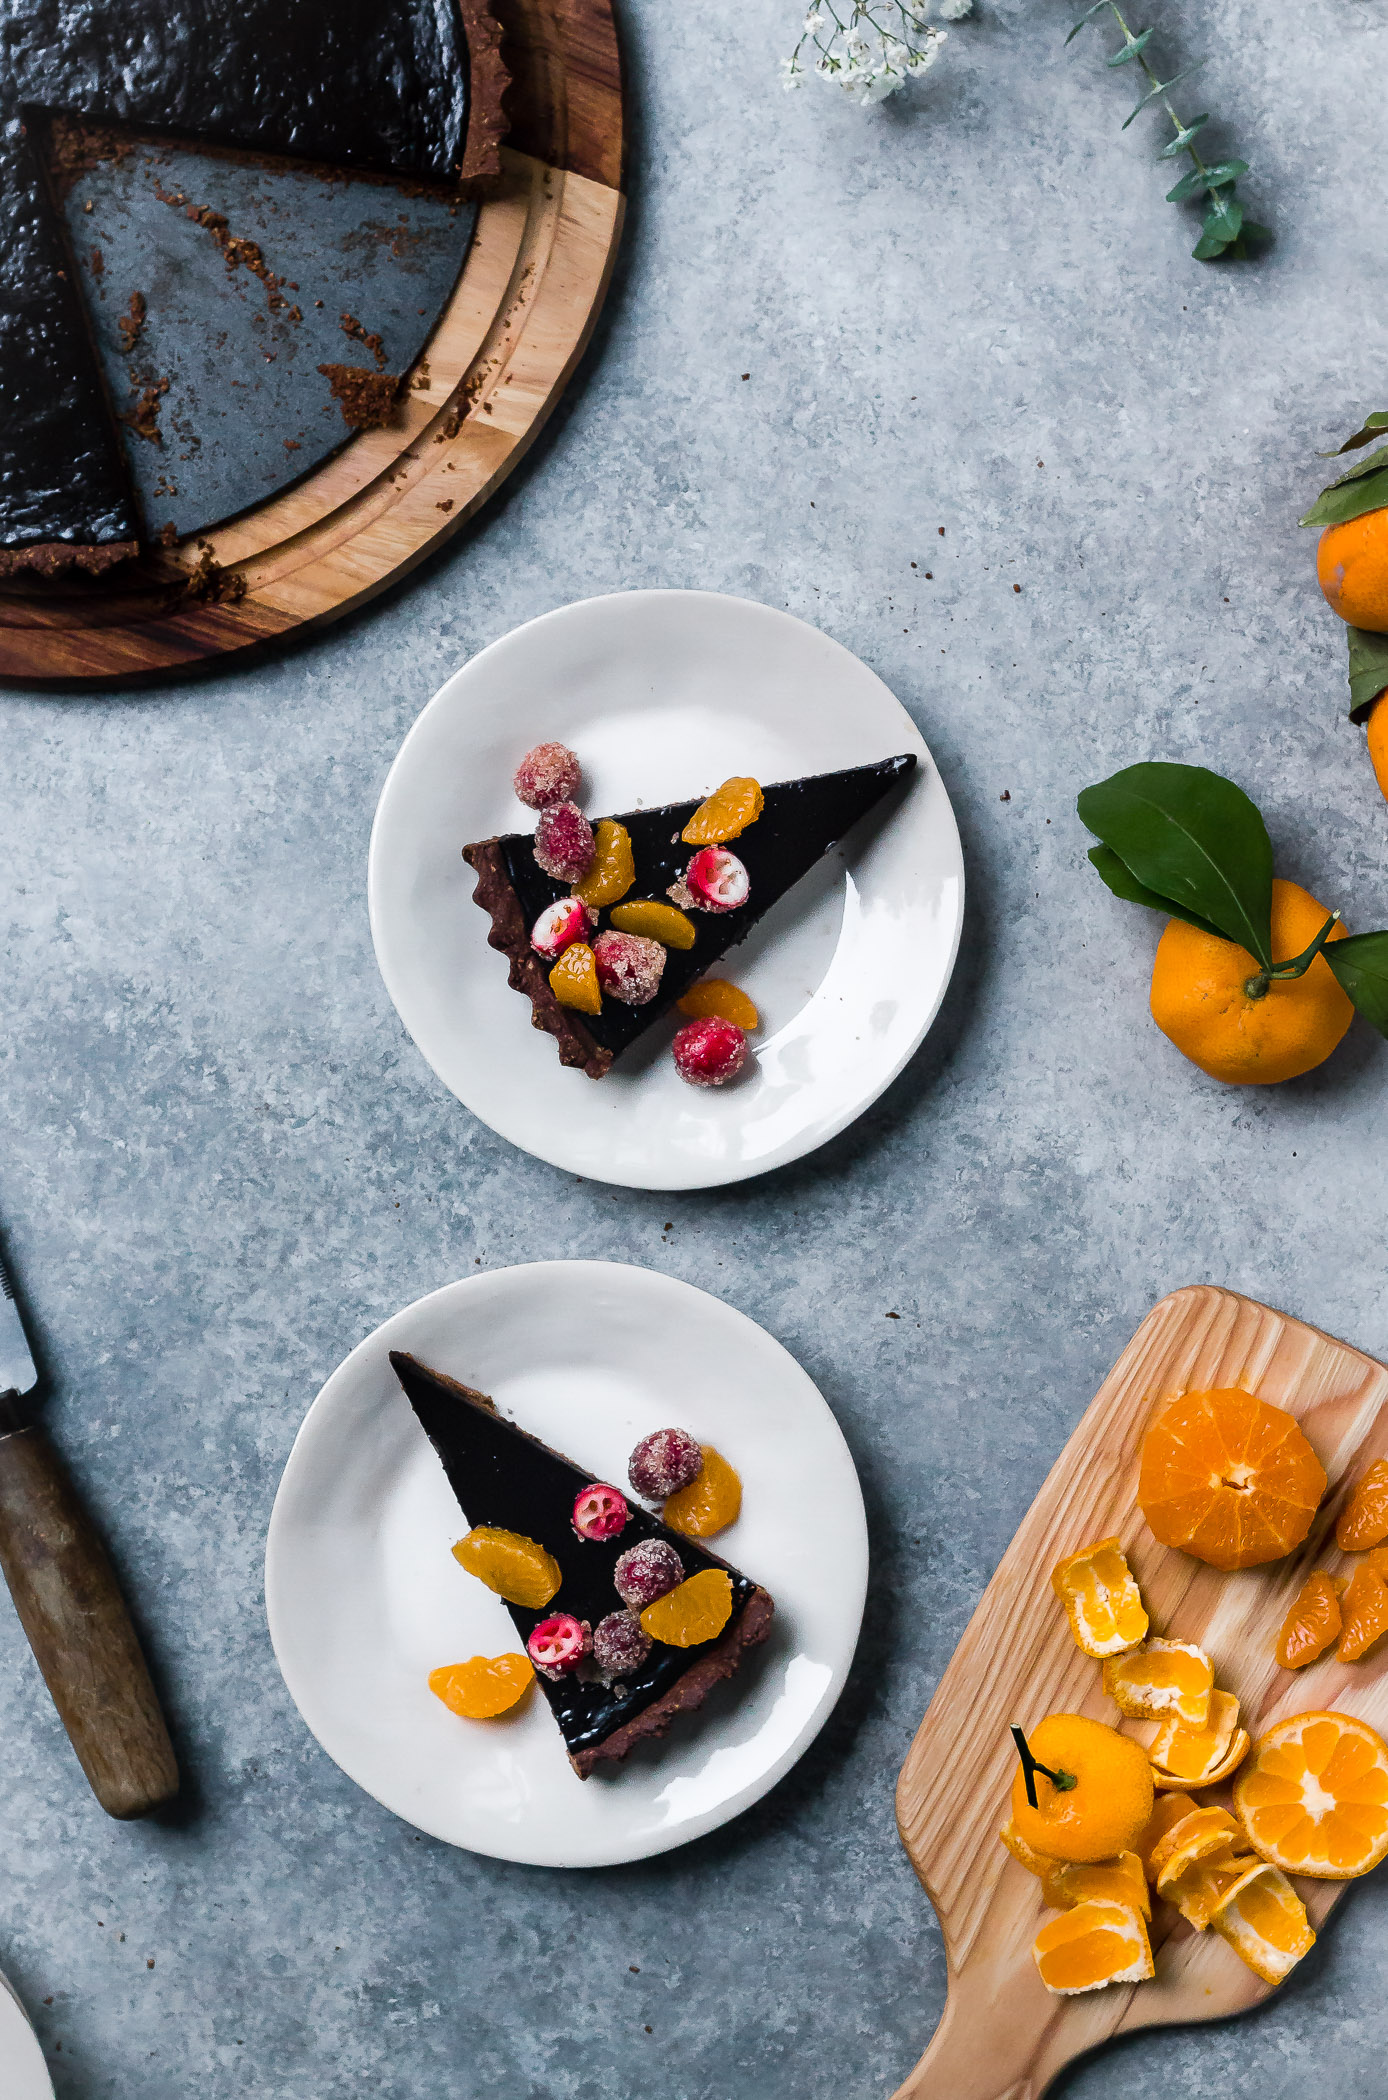 slices of dark chocolate tart with cinnamon sugared cranberries and satsumas